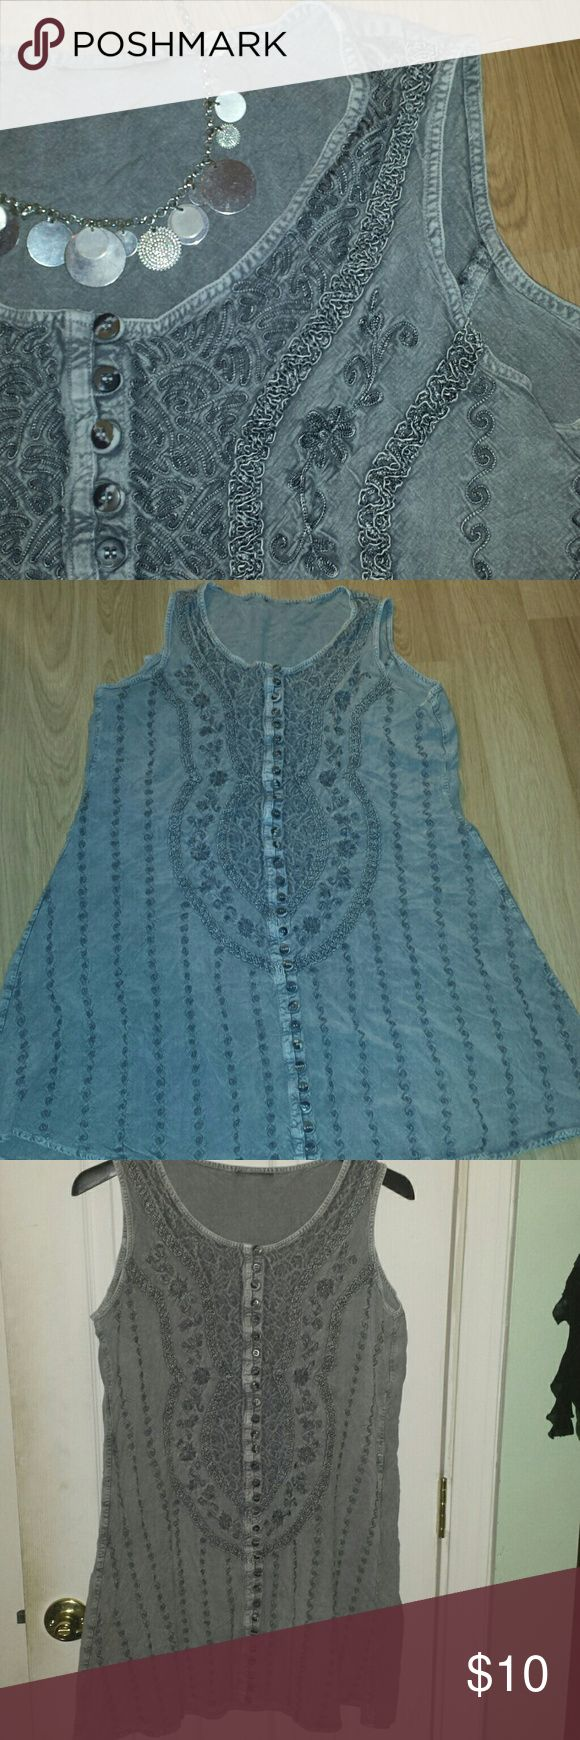 """Boho sundress The perfect dress for festivals, the beach, or any casual event. Embellished all over with tone-on-tone embroidery. No tags. One size fits S - XL, thanks to ties in back.  Armpit to armpit is 21"""" measured flat. Shoulder to bottom hem is 33 inches.  EUC. Dresses"""